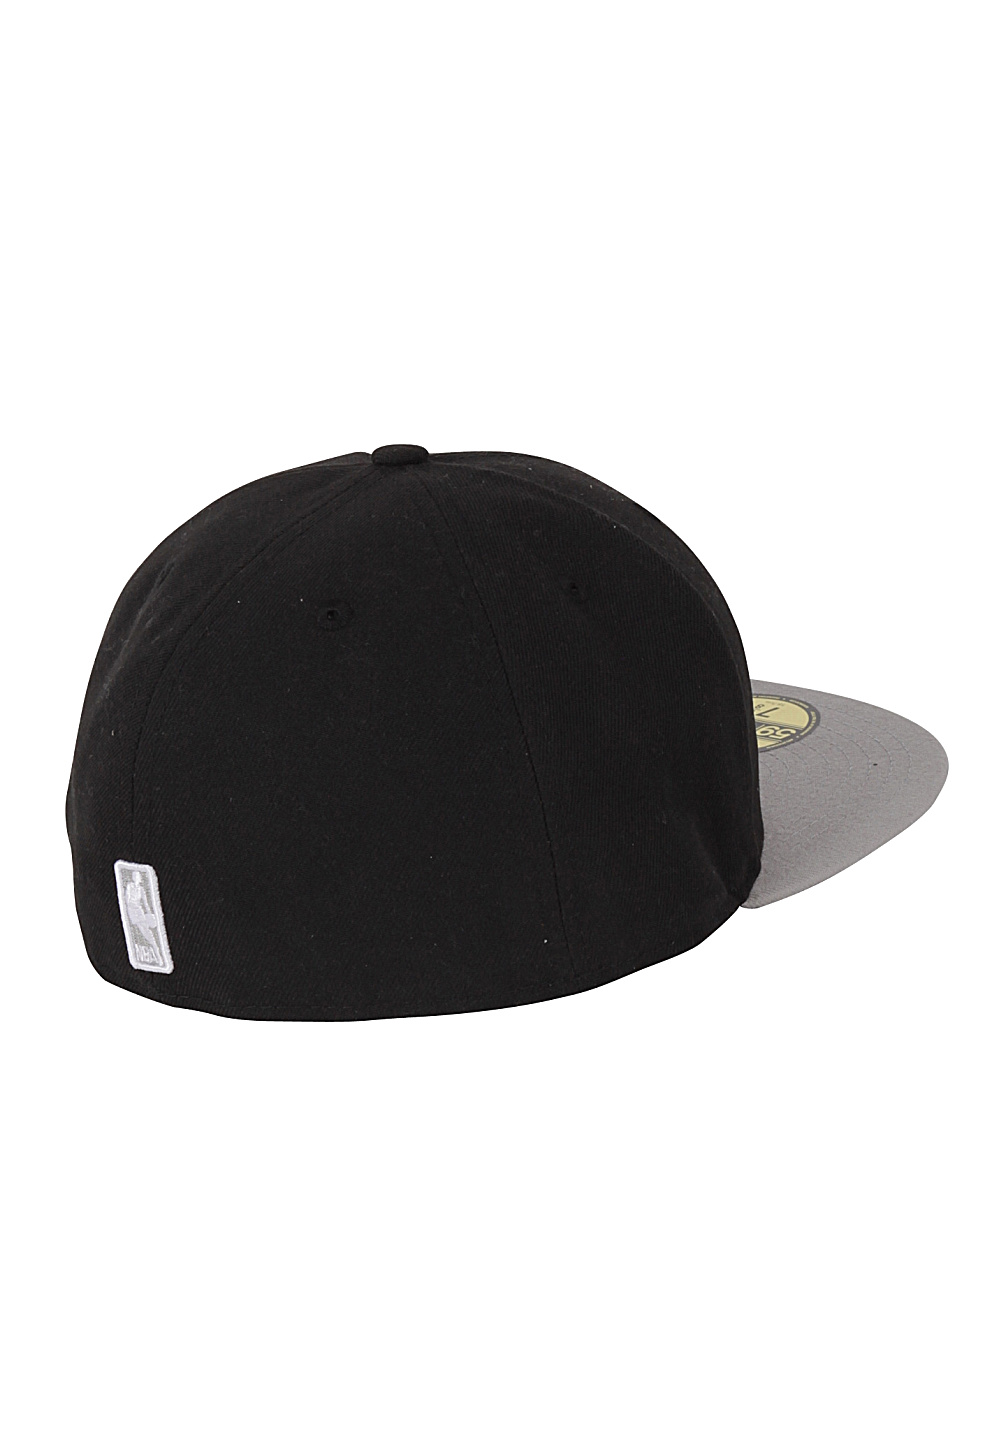 6b6263281d969 ... NEW Era NBA Basic Brooklyn Nets - Fitted Cap - Black. Back to Overview.  1  2. Previous